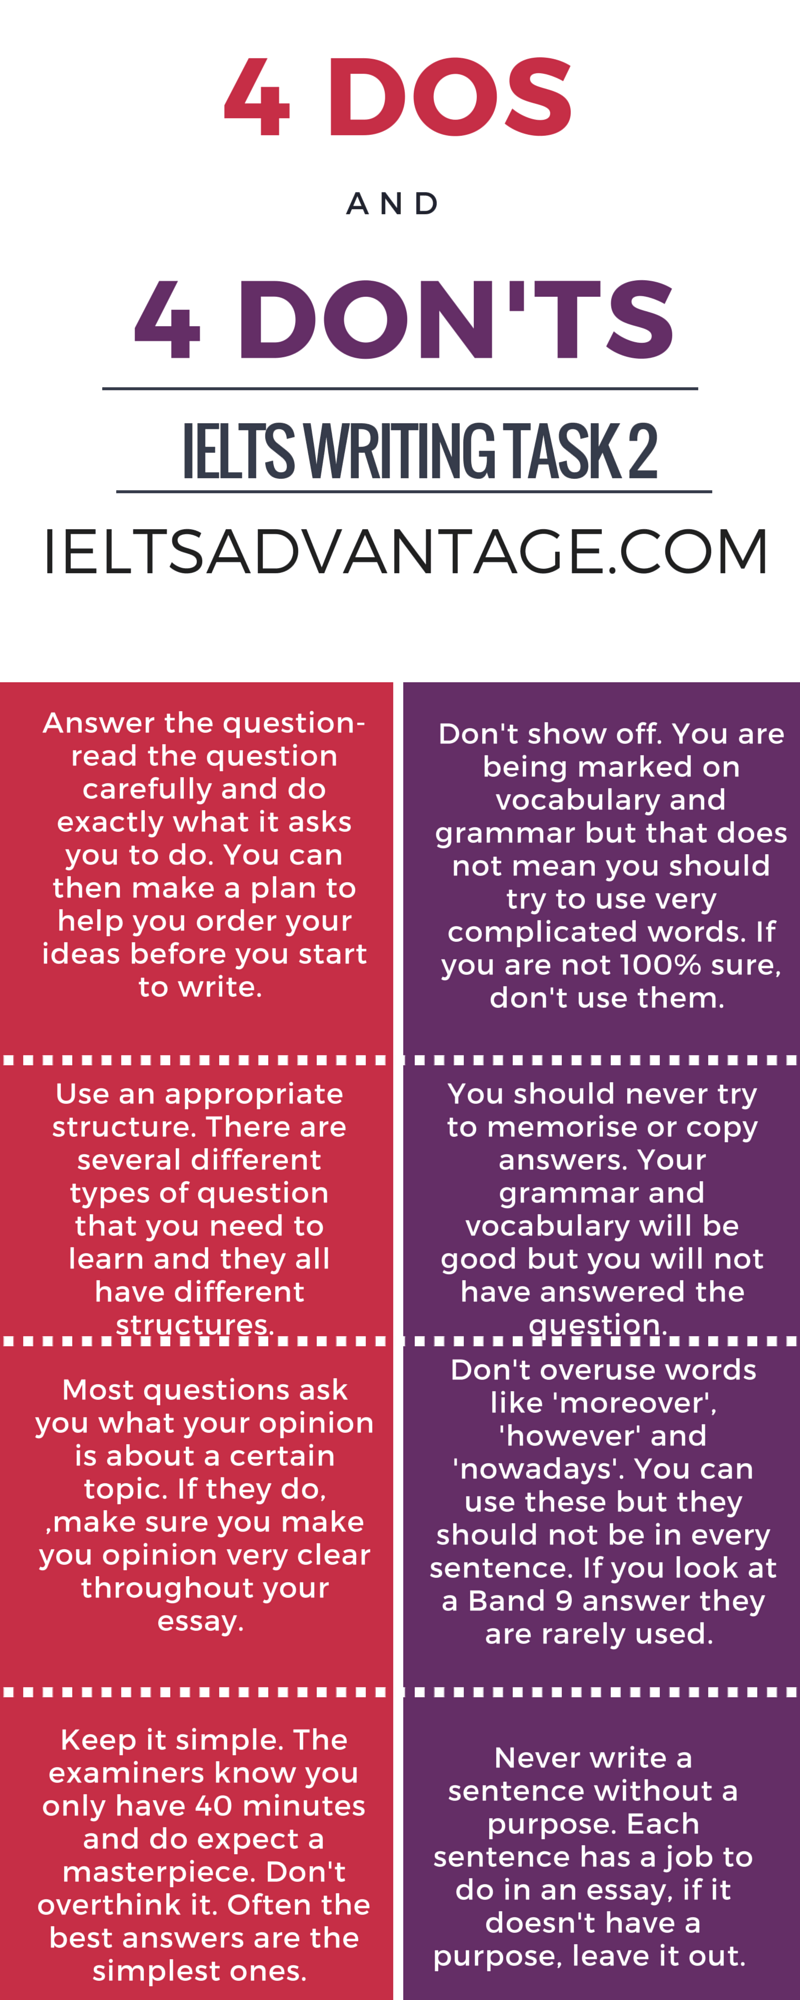 ielts writing tips infographic jroozinternational com these are ielts writing tips for people doing the academic paper but you will also them useful for the general paper most of these tips are for ielts